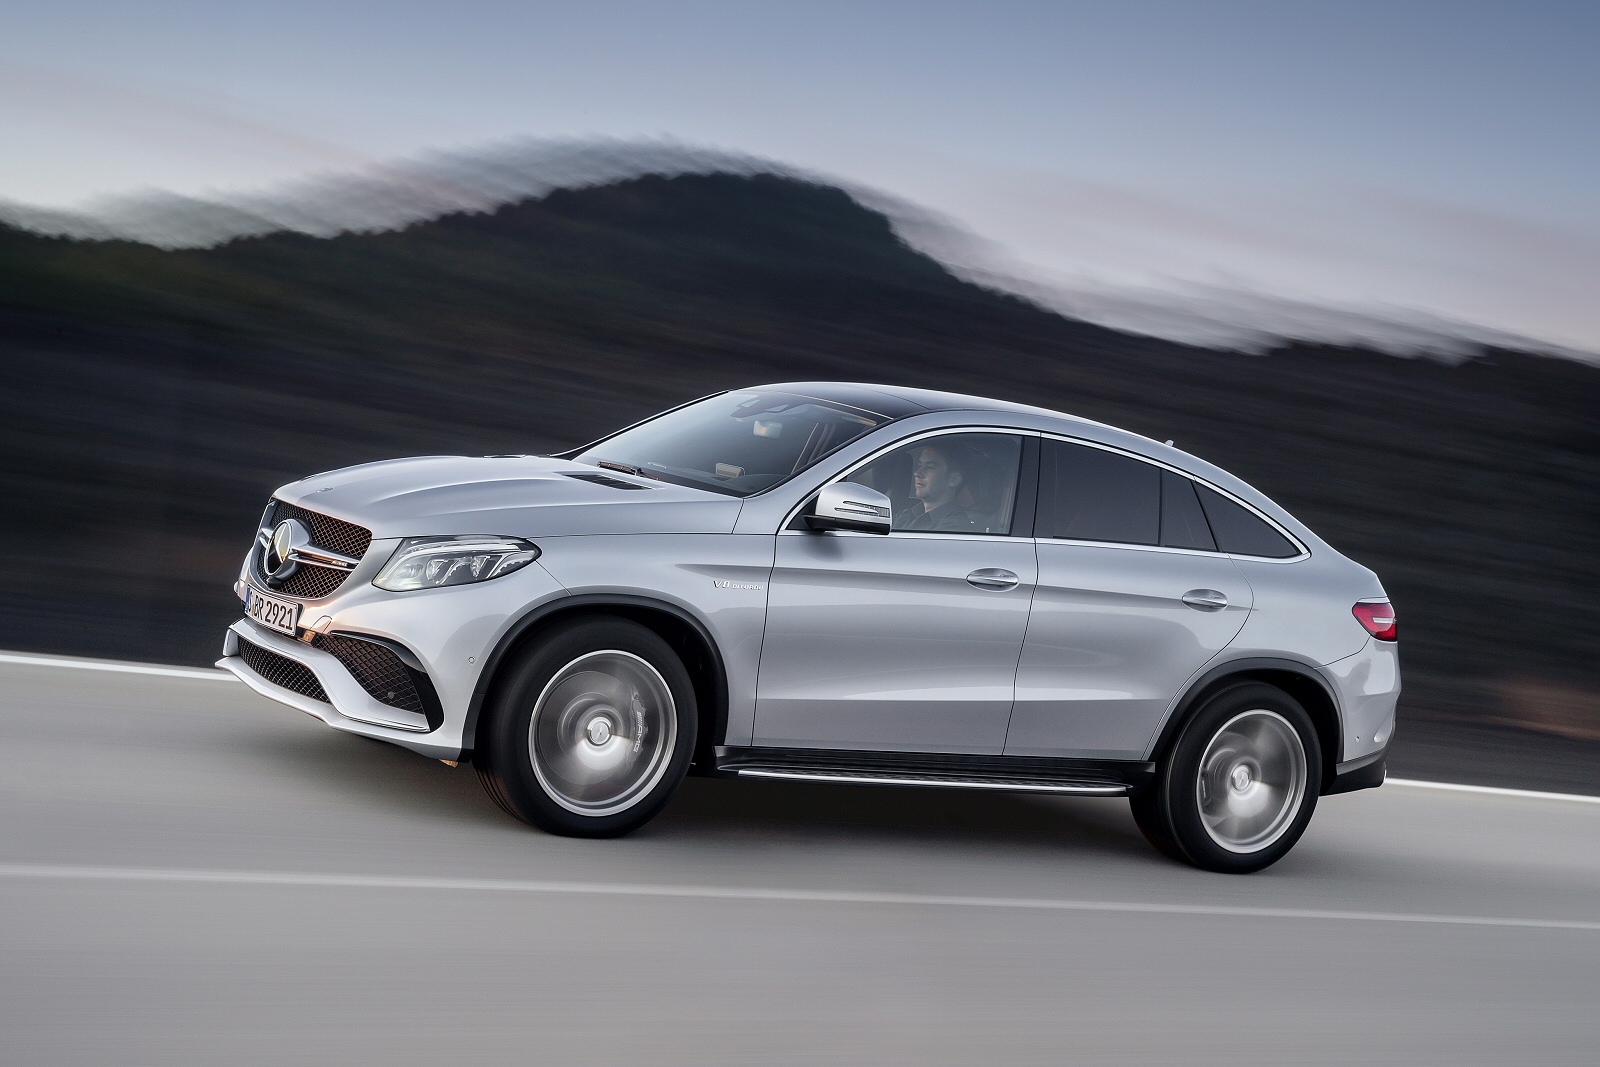 New Mercedes Benz Gle Coupe Gle 350d 4matic Amg Night Edition 5dr 9g